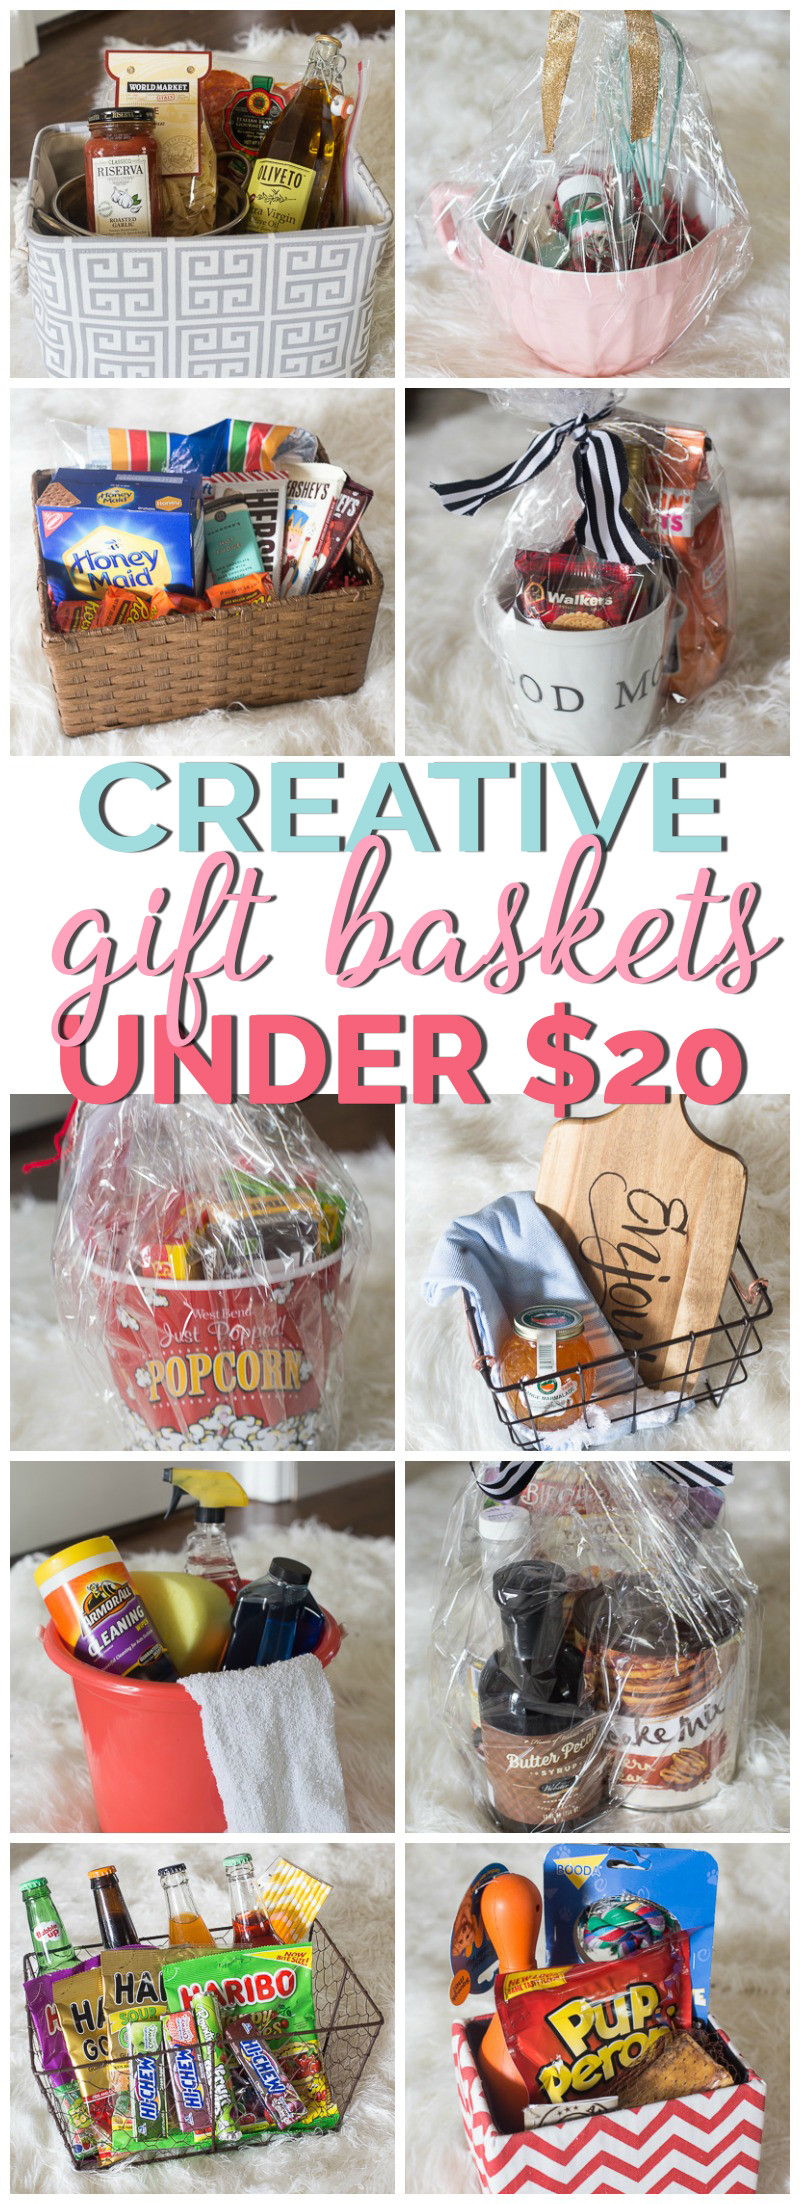 Best ideas about Gift Basket Ideas . Save or Pin Creative Gift Basket Ideas Under $20 Now.